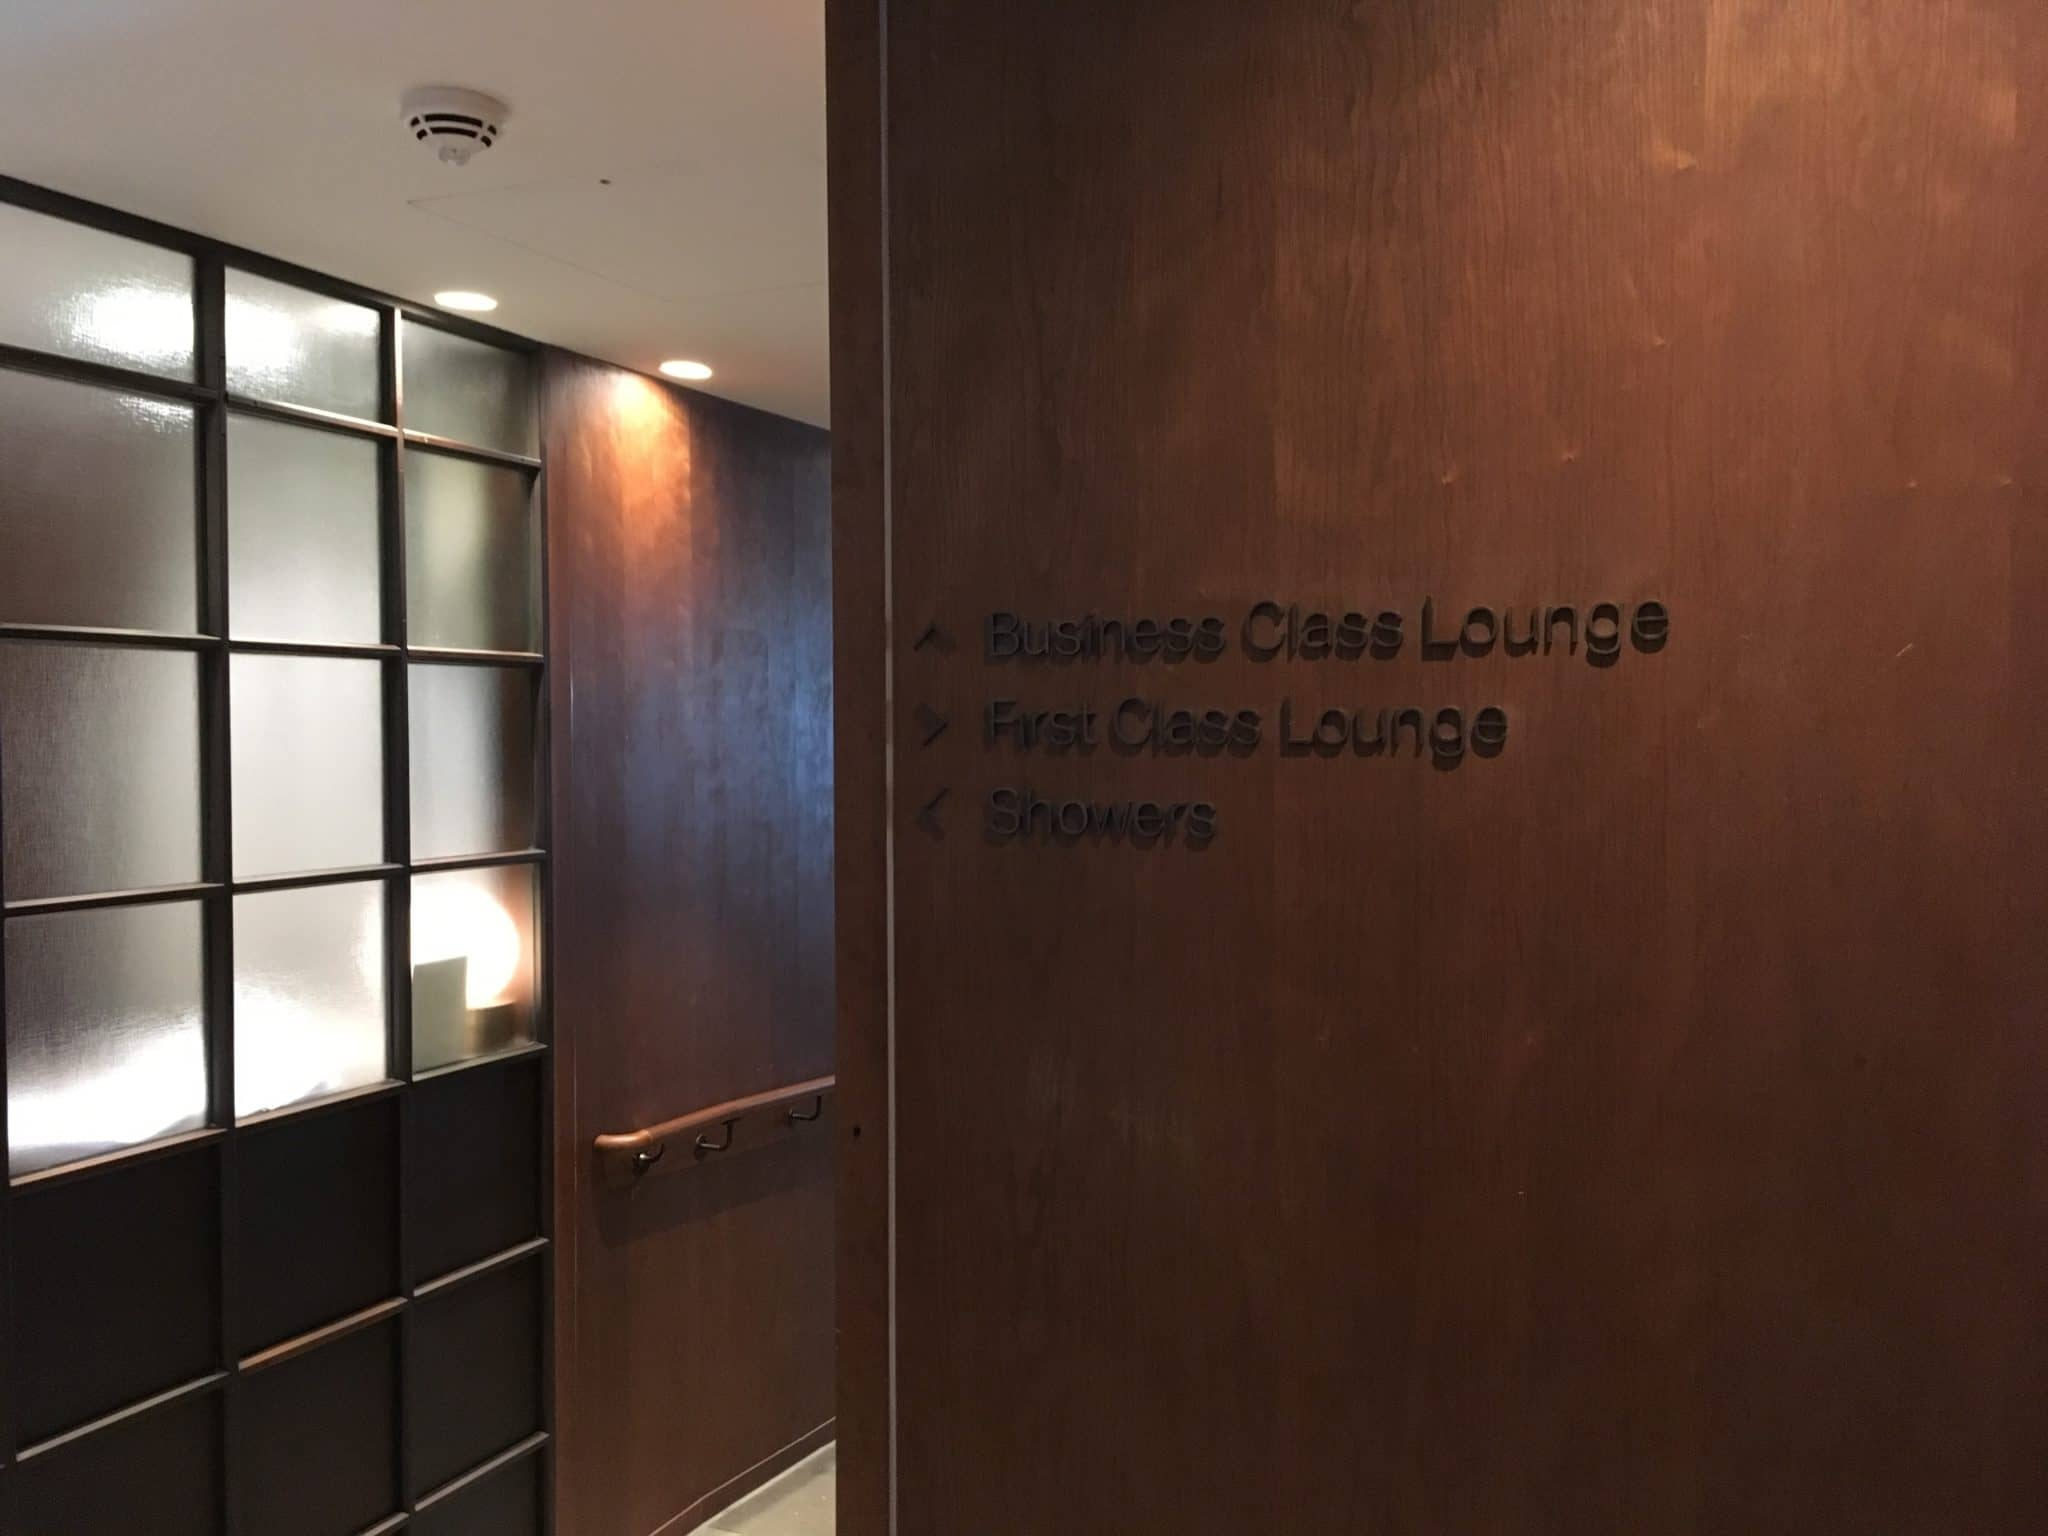 Cathay Pacific Business Class Lounge London Wegweiser